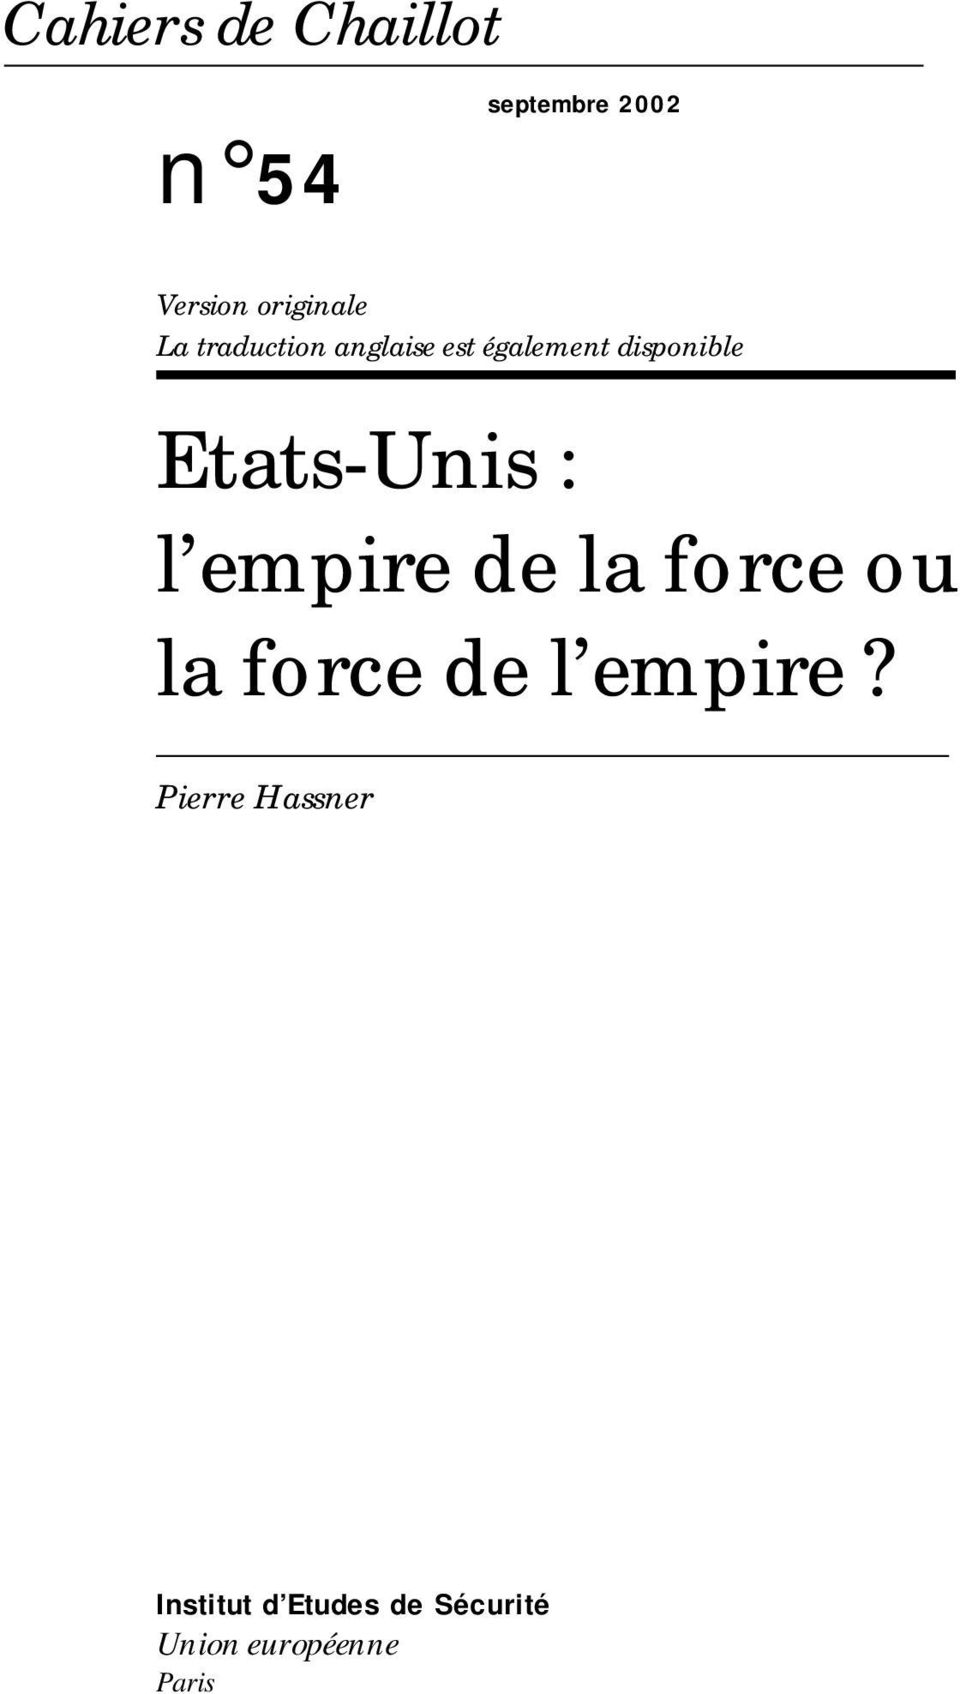 Etats-Unis : l empire de la force ou la force de l empire?